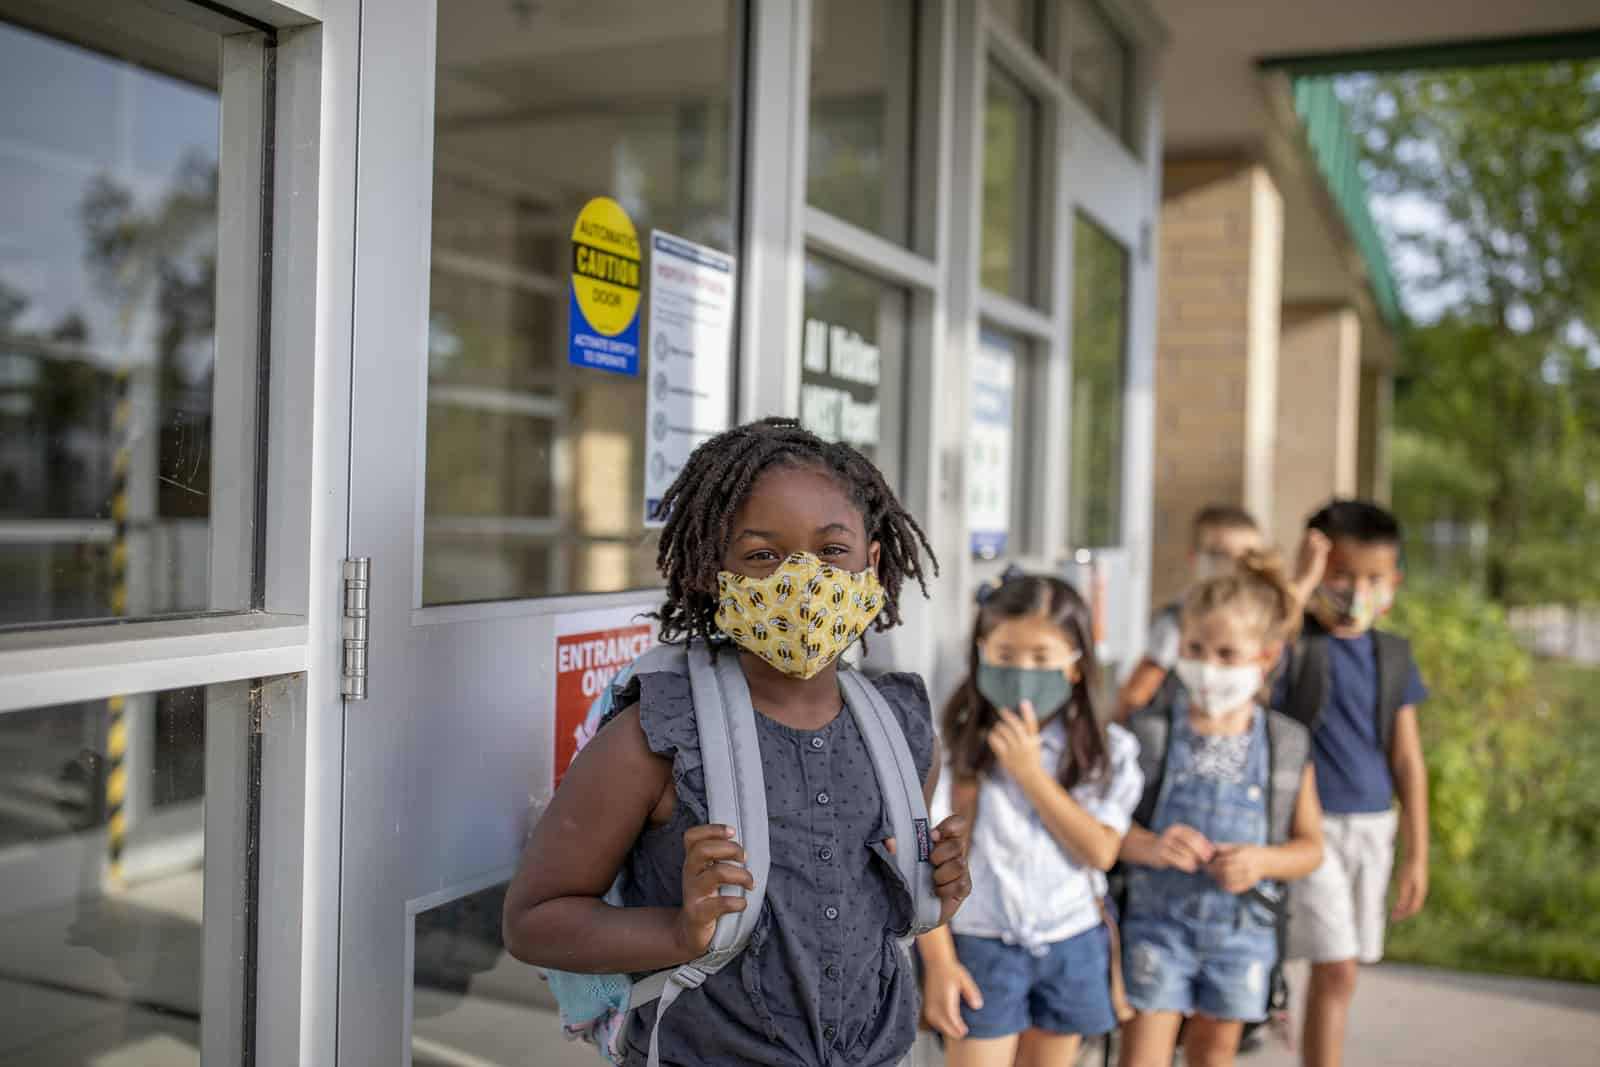 Group of kids return to school wearing face masks during the pandemic